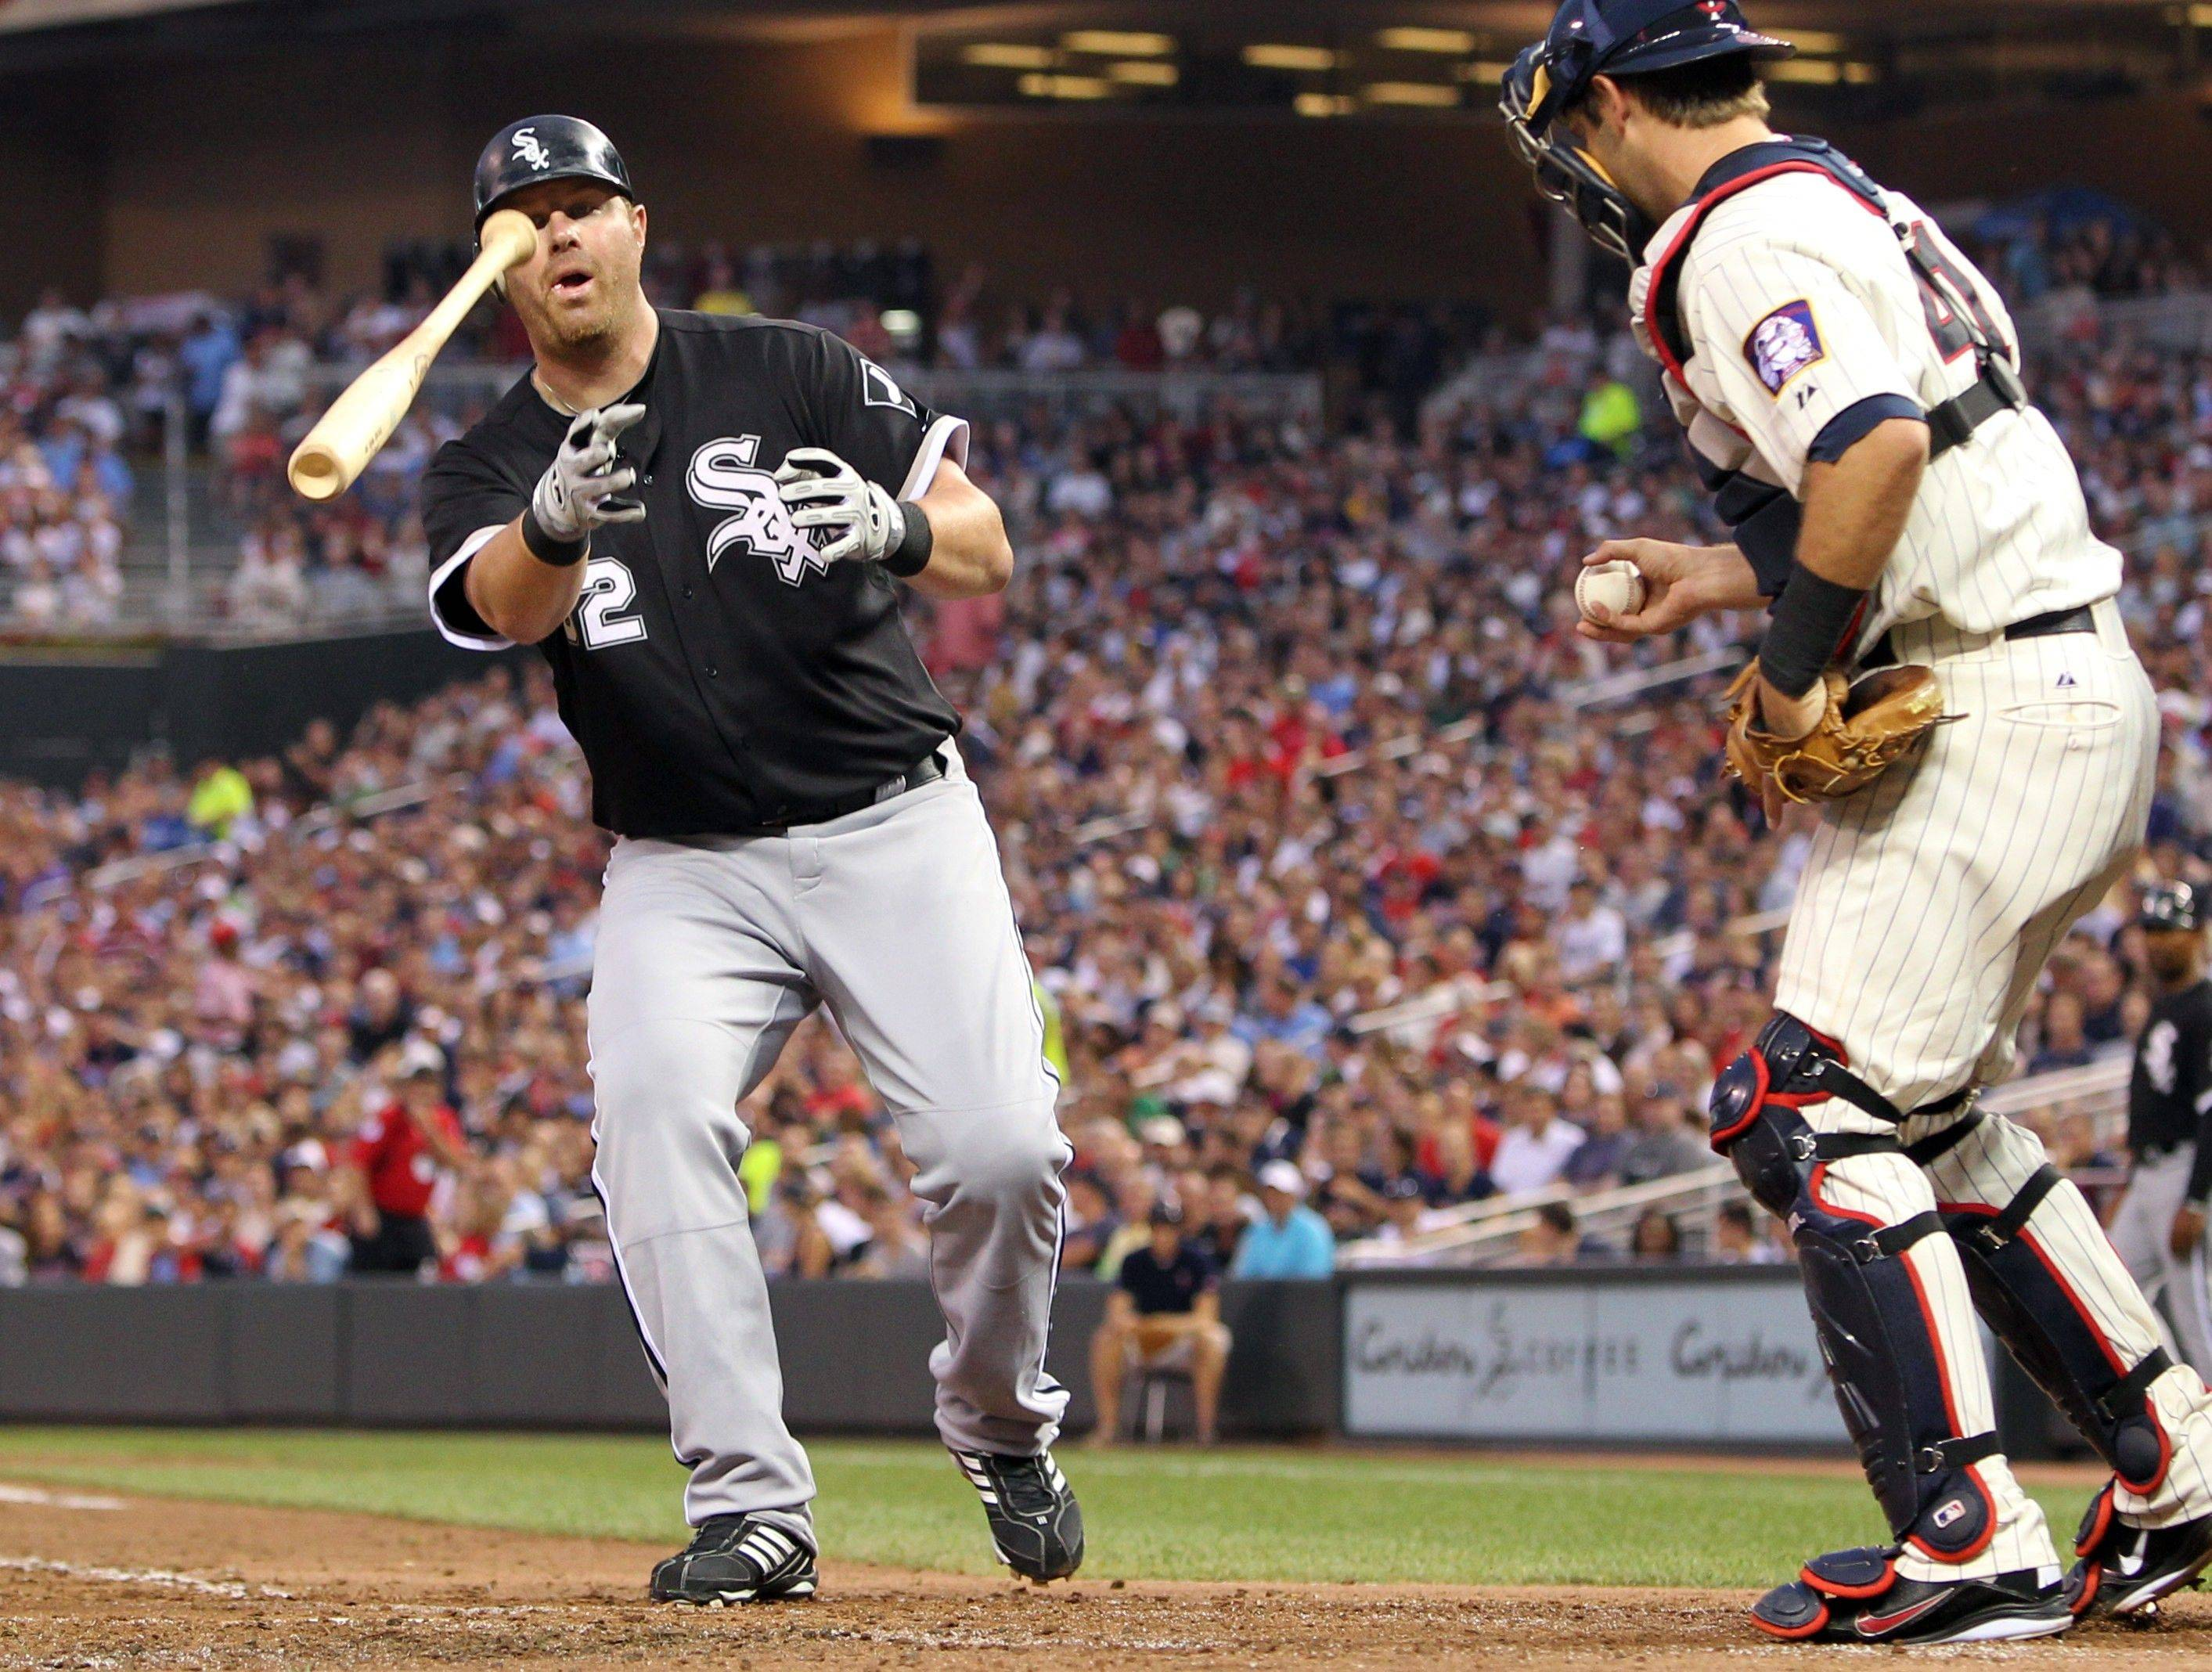 Adam Dunn batted .159 with a .292 on-base percentage and club record 177 strikeouts last season.